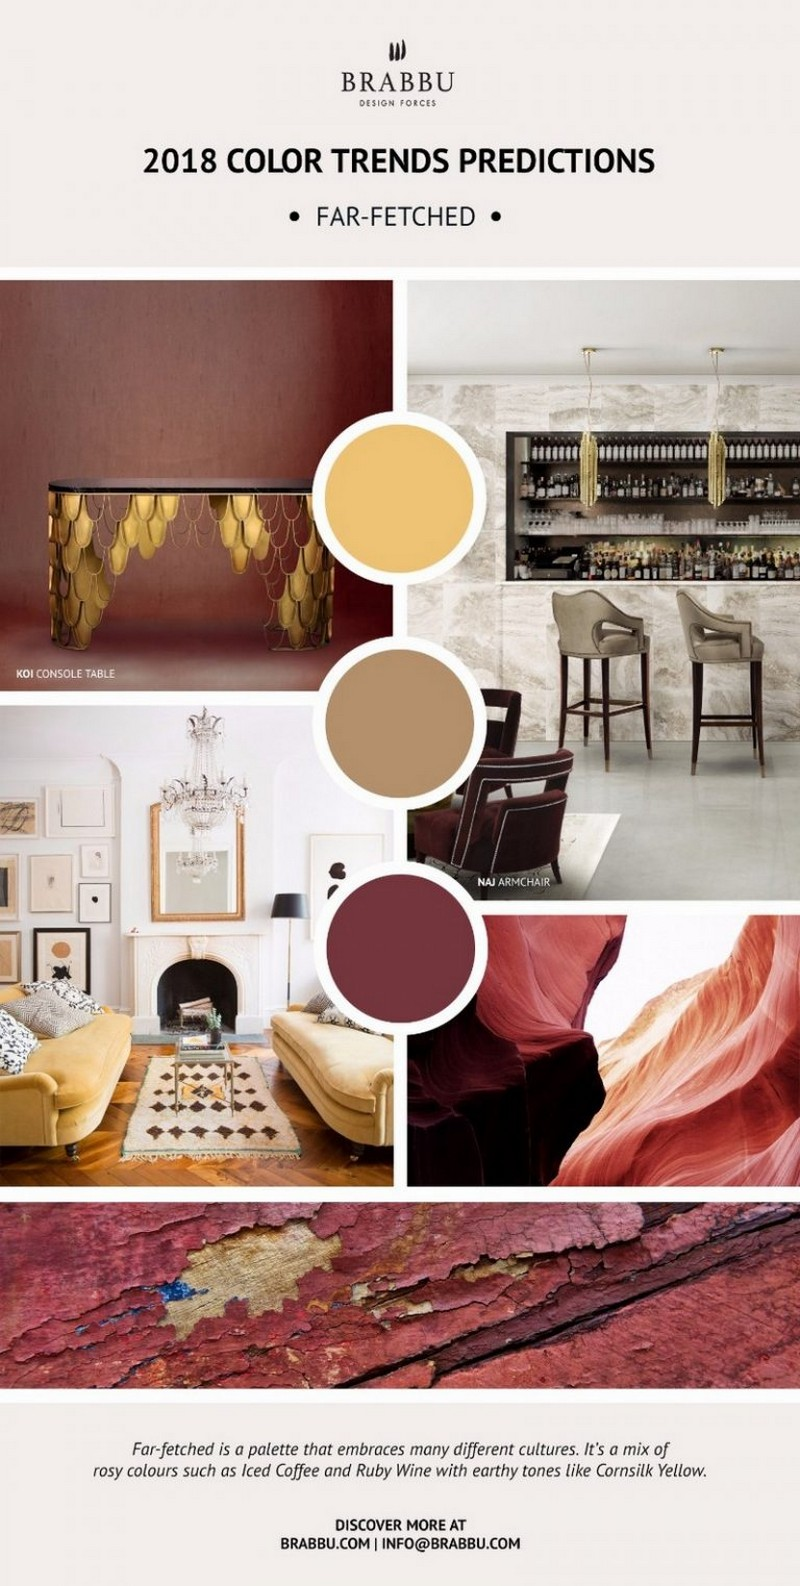 pantone's color trend predictions for 2018 Discover More About Pantone's Color Trend Predictions for 2018 Discover More About Pantones Color Trend Predictions for 2018 3